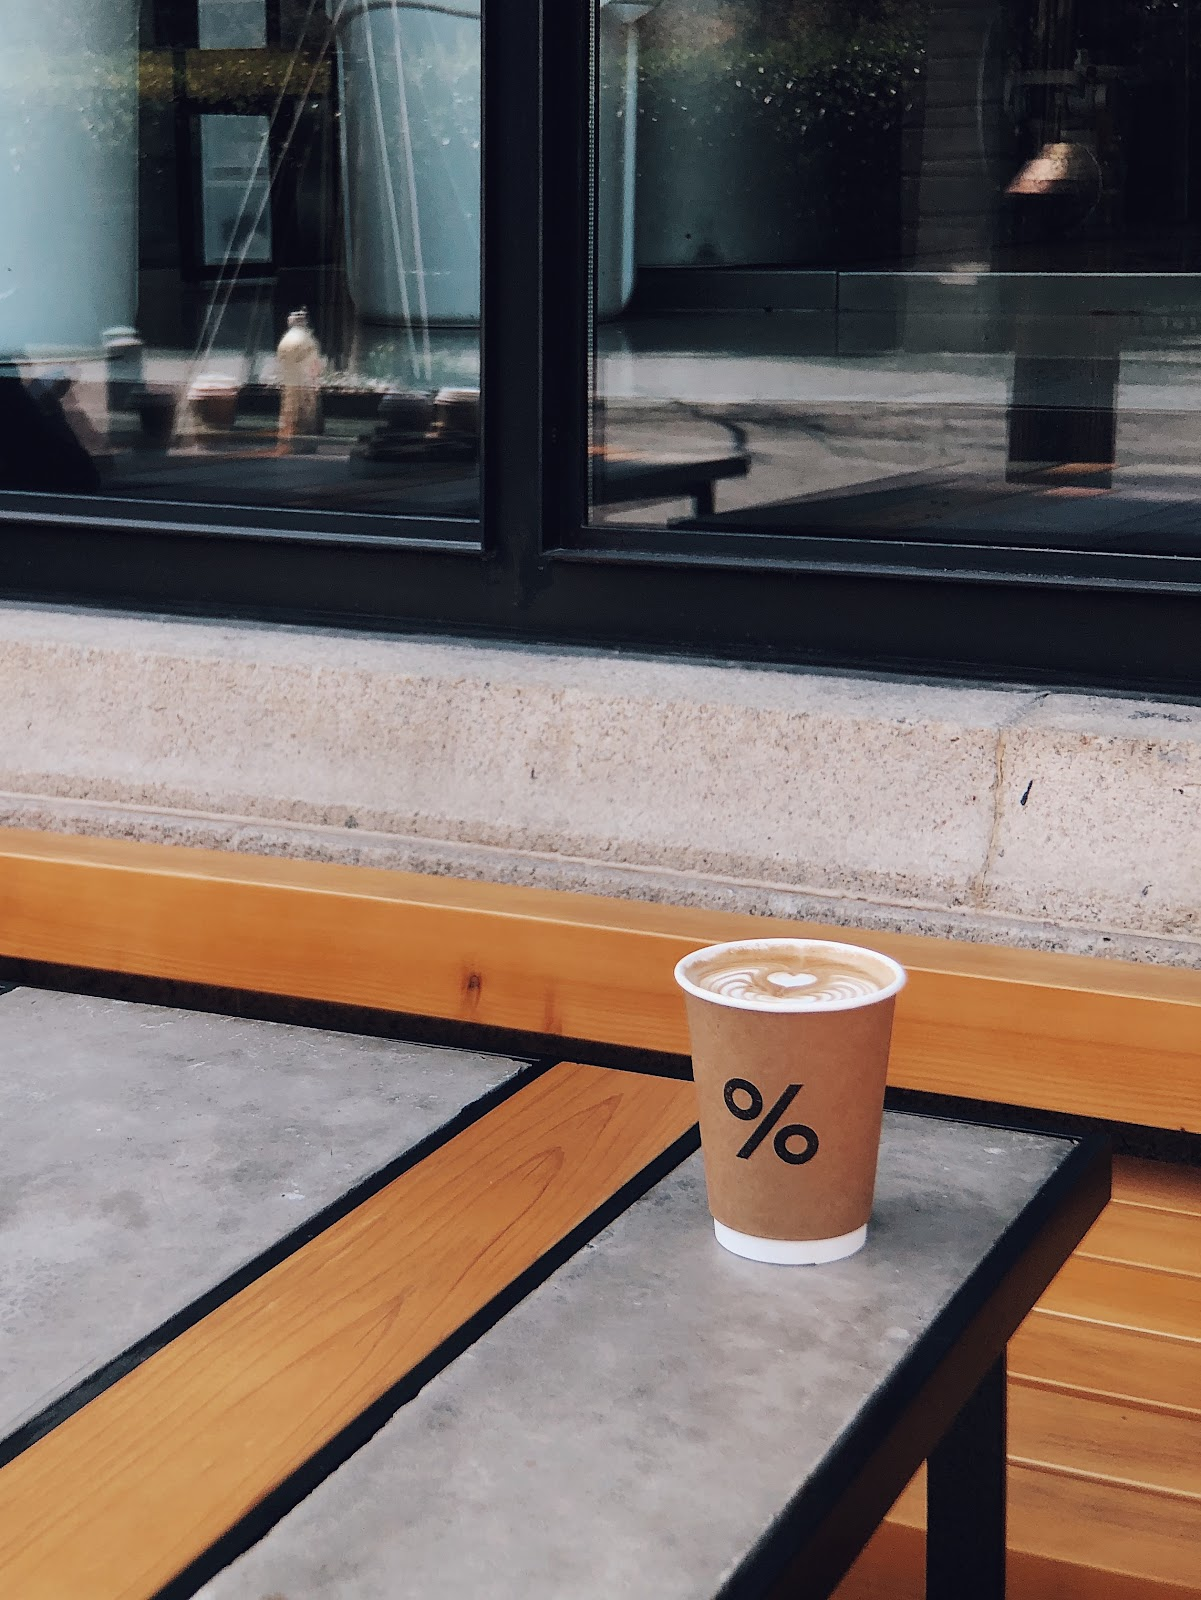 A latte in a paper cup at a coffee shop outside the window on a table. Reduce waste by bringing your own cup.